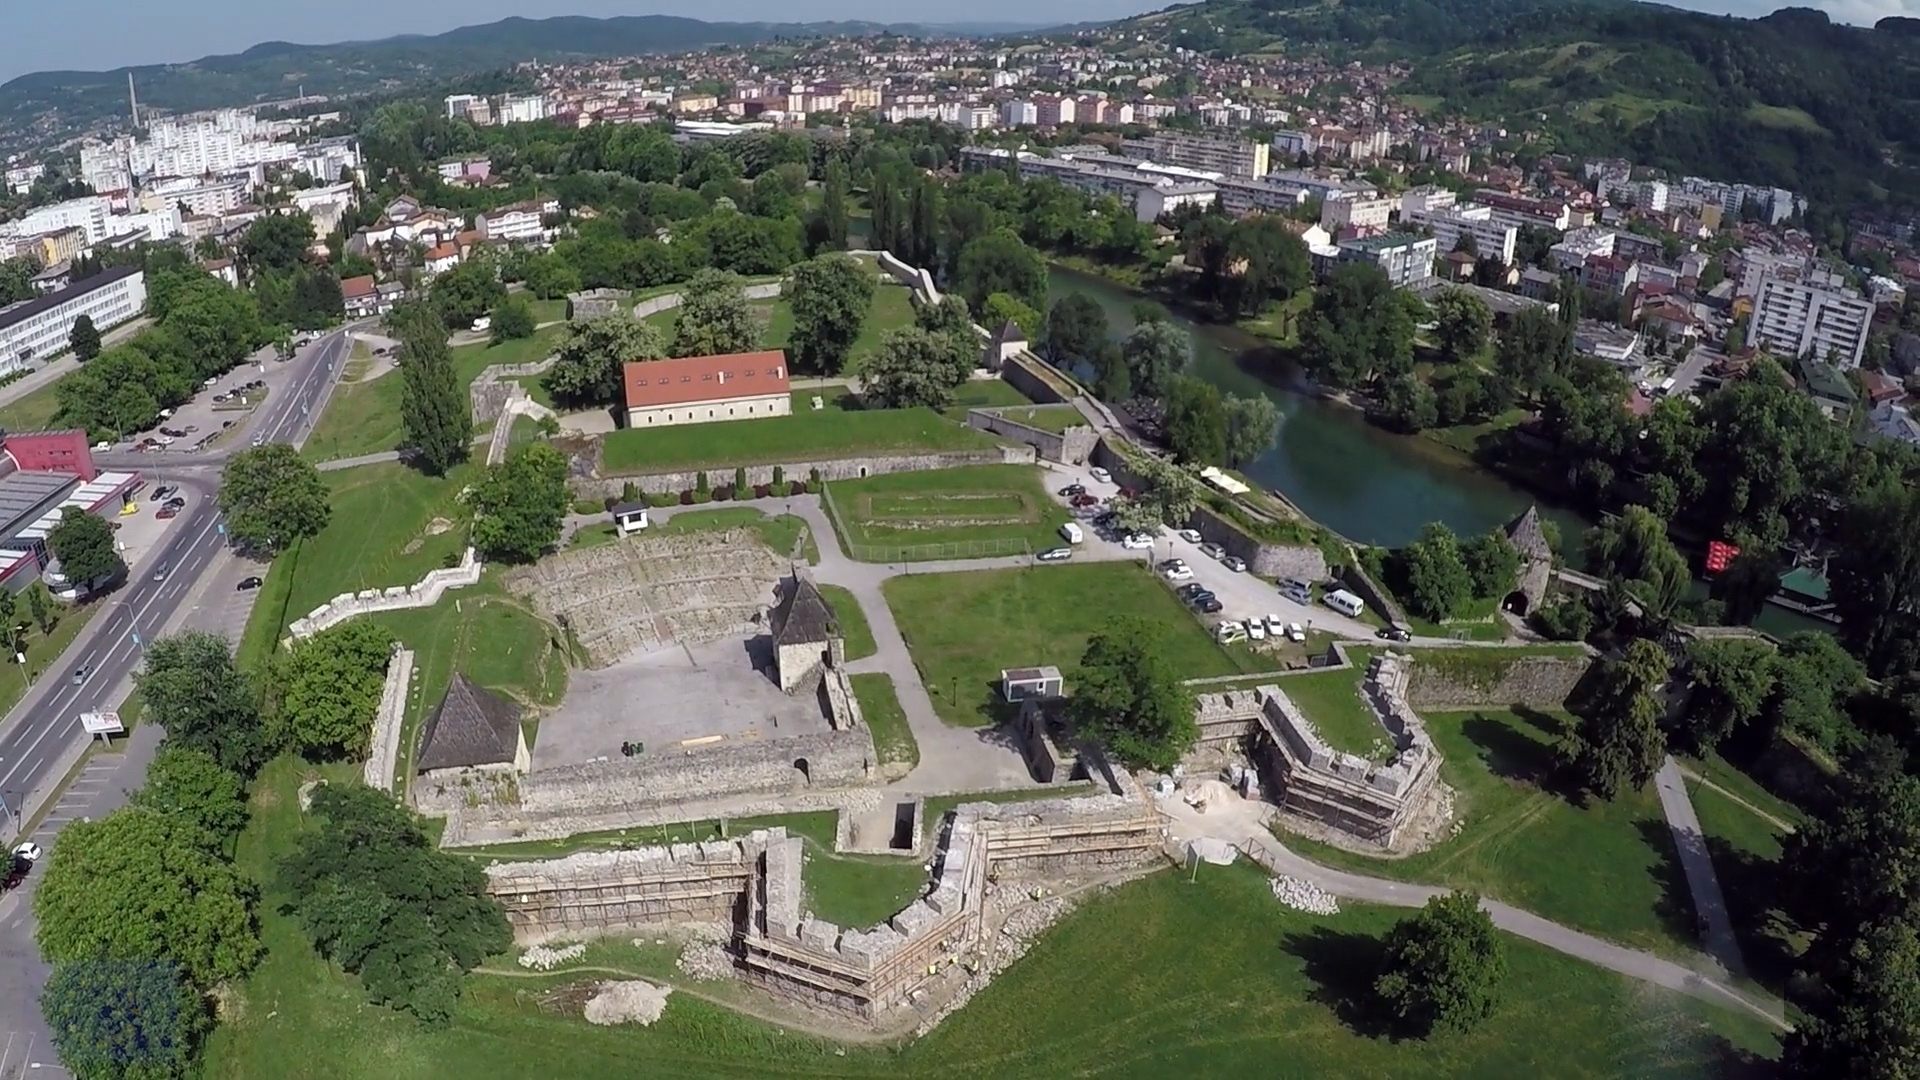 Reconstruction of the Kastel fortress in Banja Luka